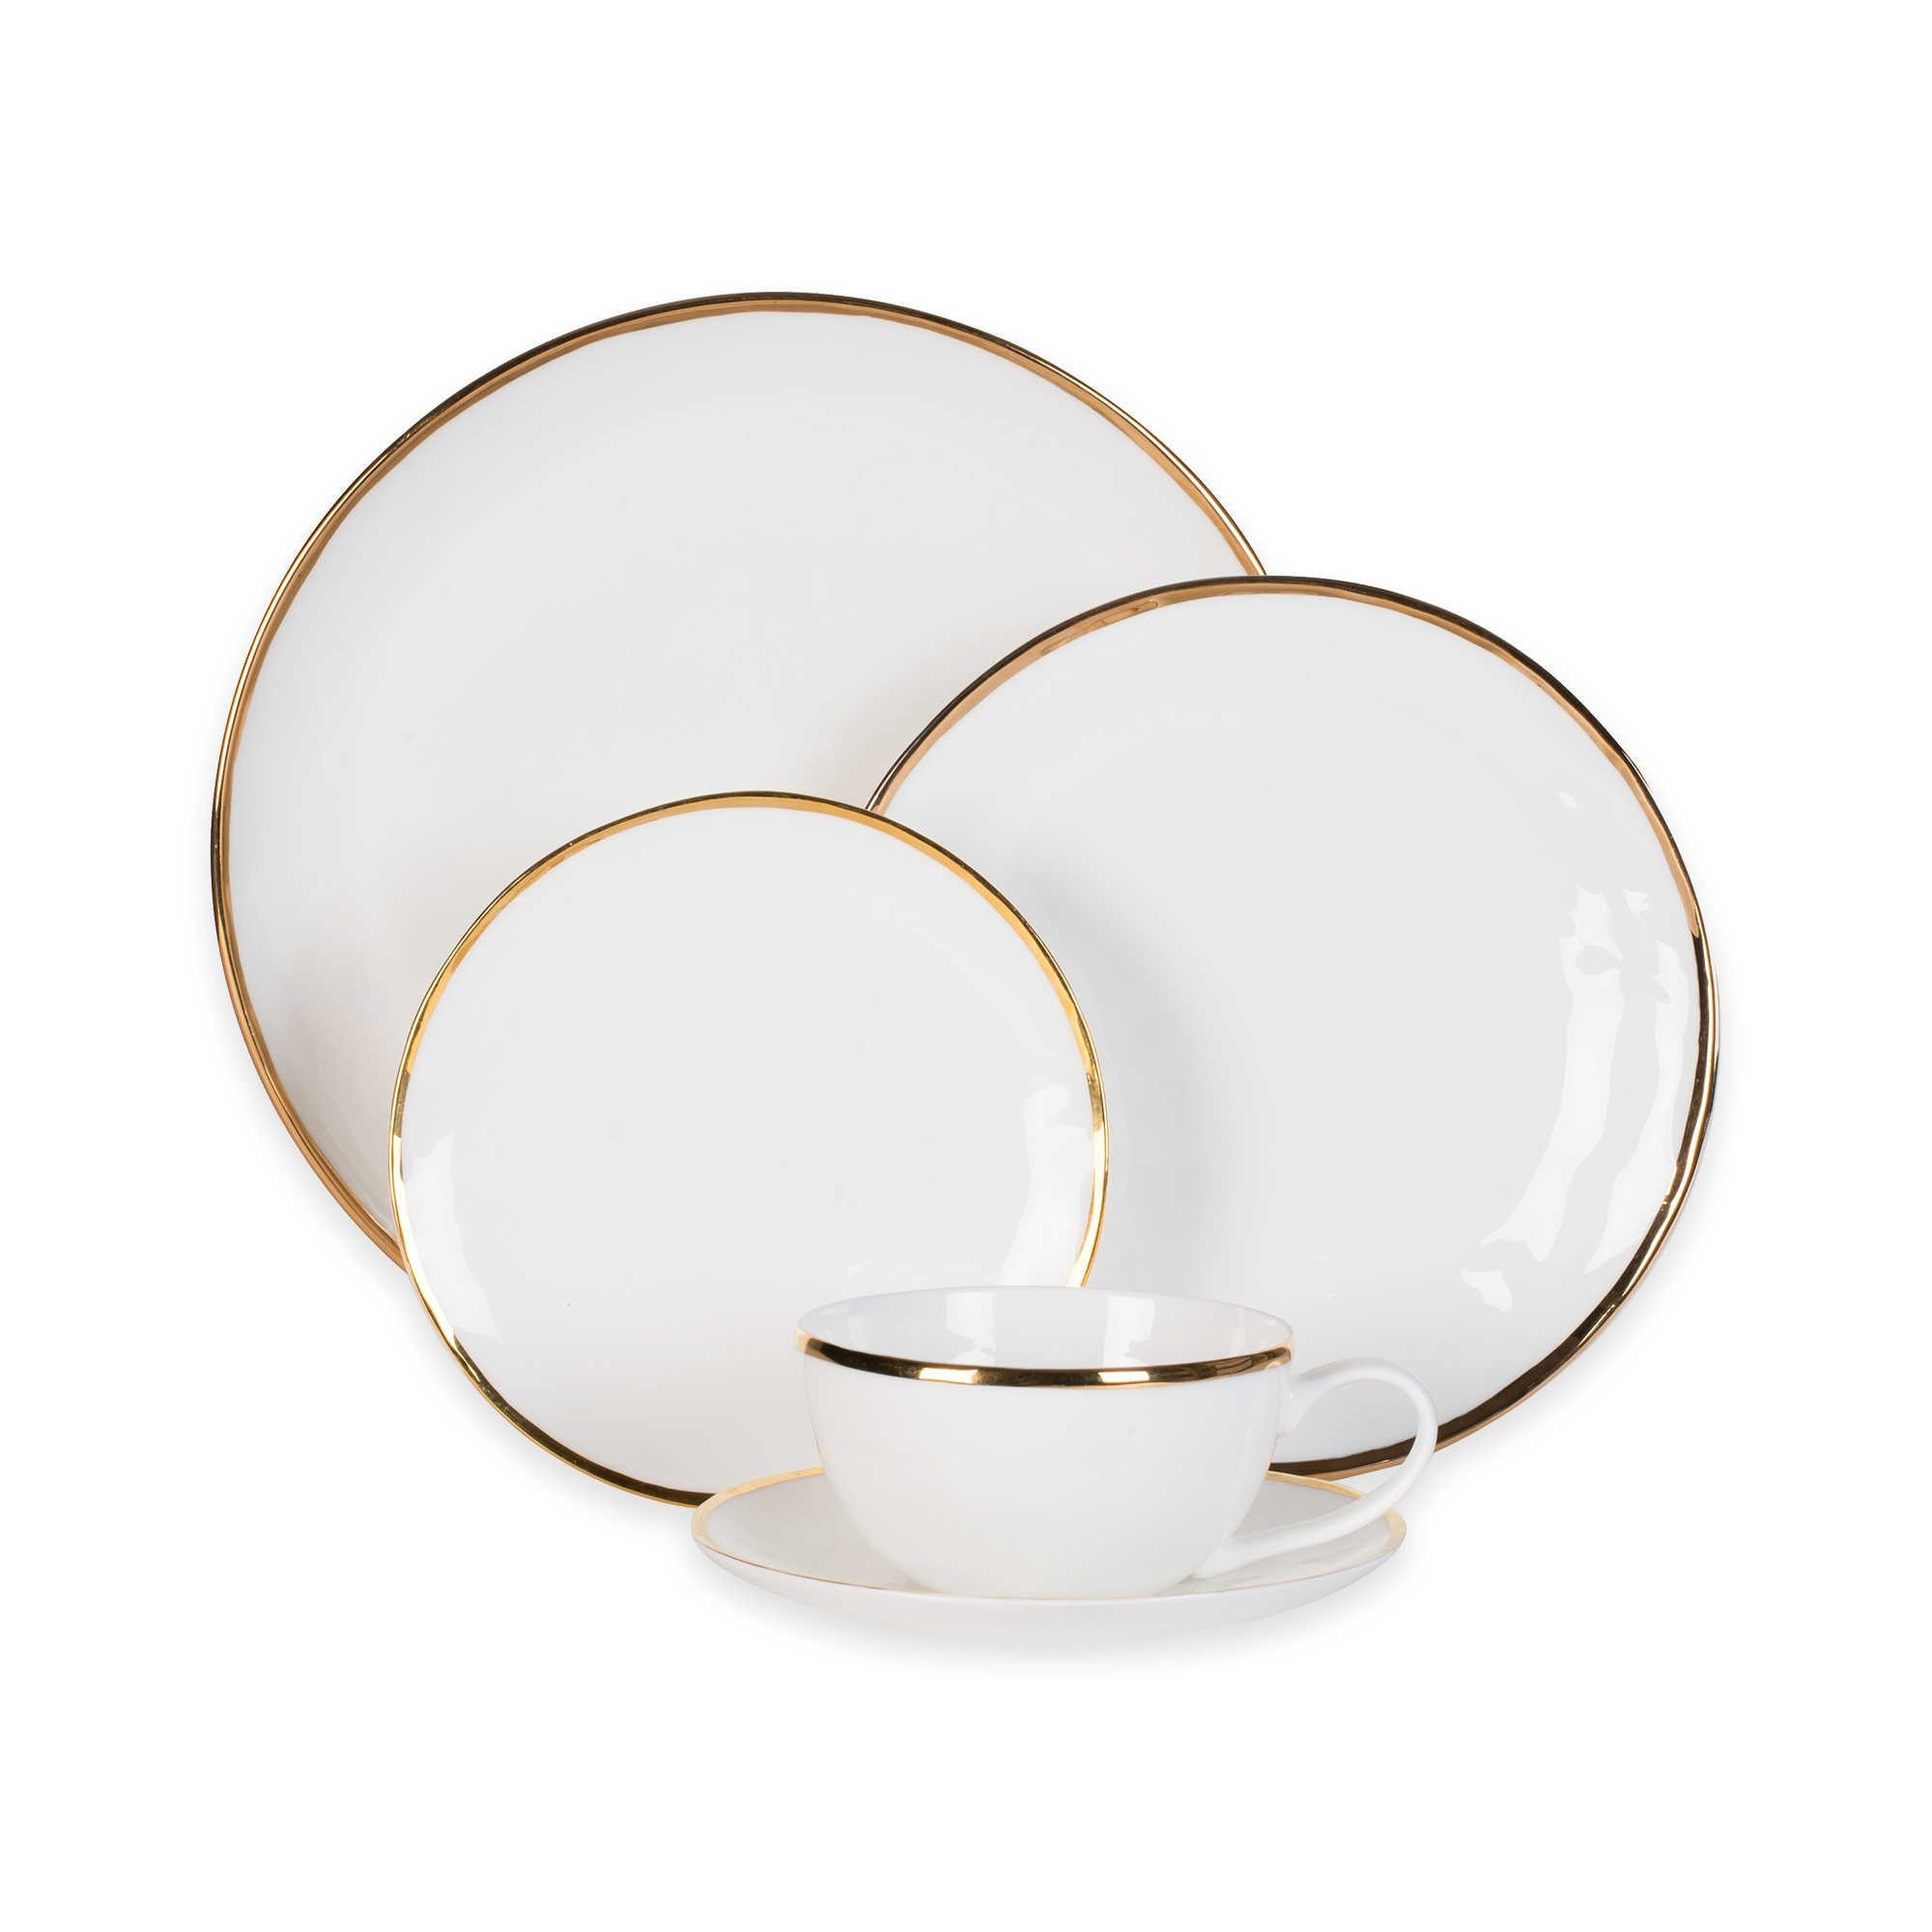 Olivia & Oliver Harper Organic Shape Gold 5-Piece Place Setting